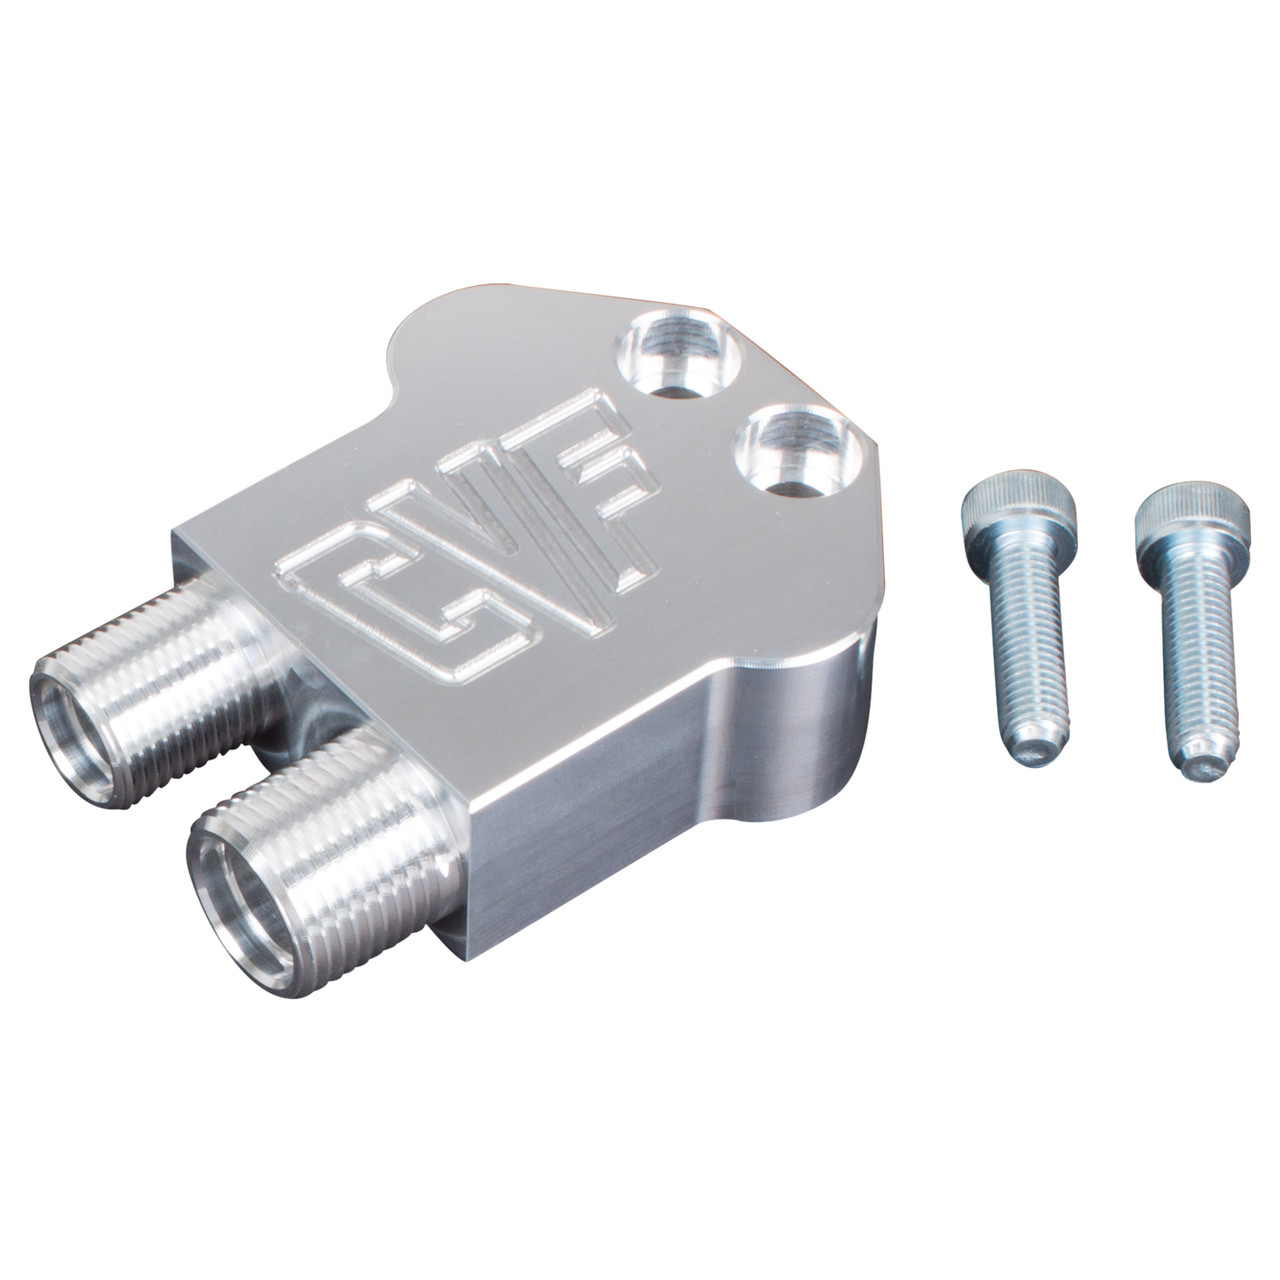 Sanden 508 Compressor Fittings